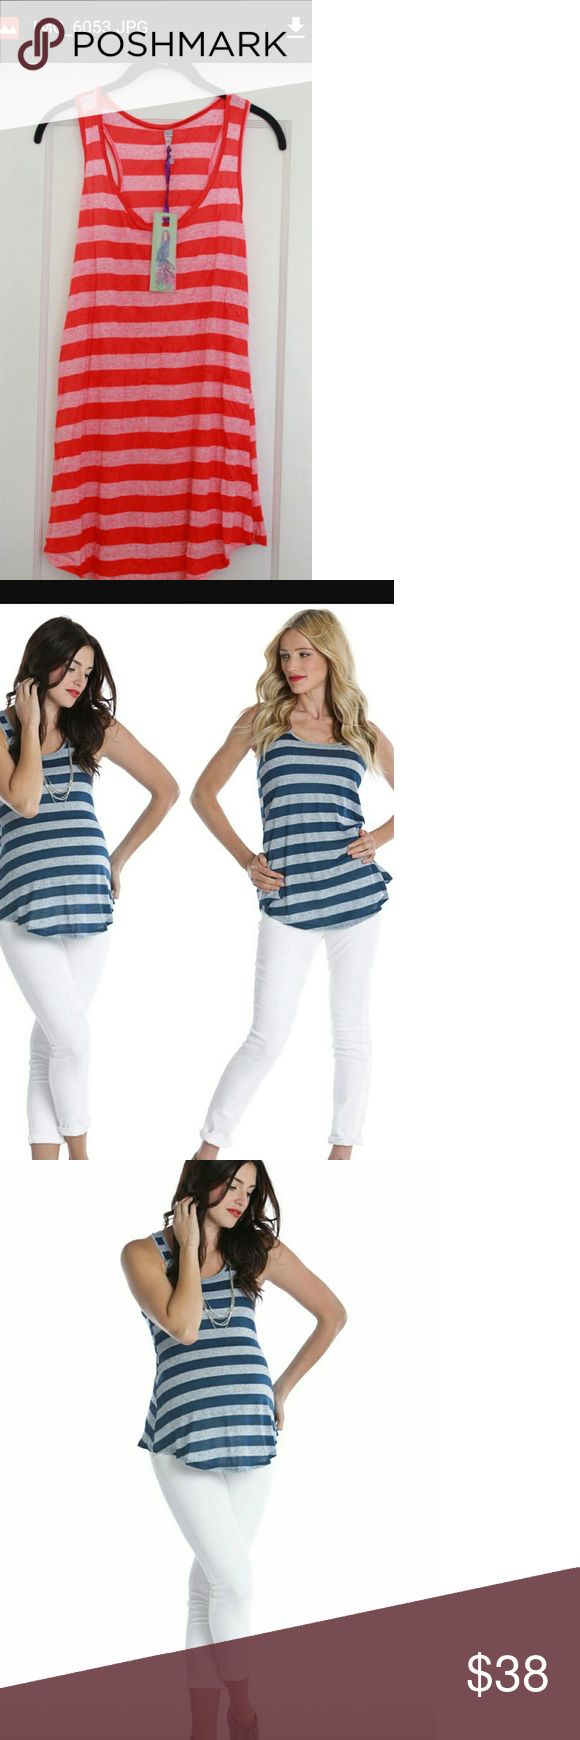 D & A Fabulous Tank from Lilac Clothing NWT NEW Coming soon, this adorable striped tank from Lilac Clothing! All Lilac's styles are designed fit beautifully whether you are pregnant or not. This is great with jeans, shorts, capris, use it as a swim cover up, or an extra layer when nursing. Lilac designer clothing is made to fit and look beautiful and a whole 10 months and beyond!  Blue or coral striped available.   No offers on new items, please. Enjoy your pregnancy! Lilac Clothing Tops…